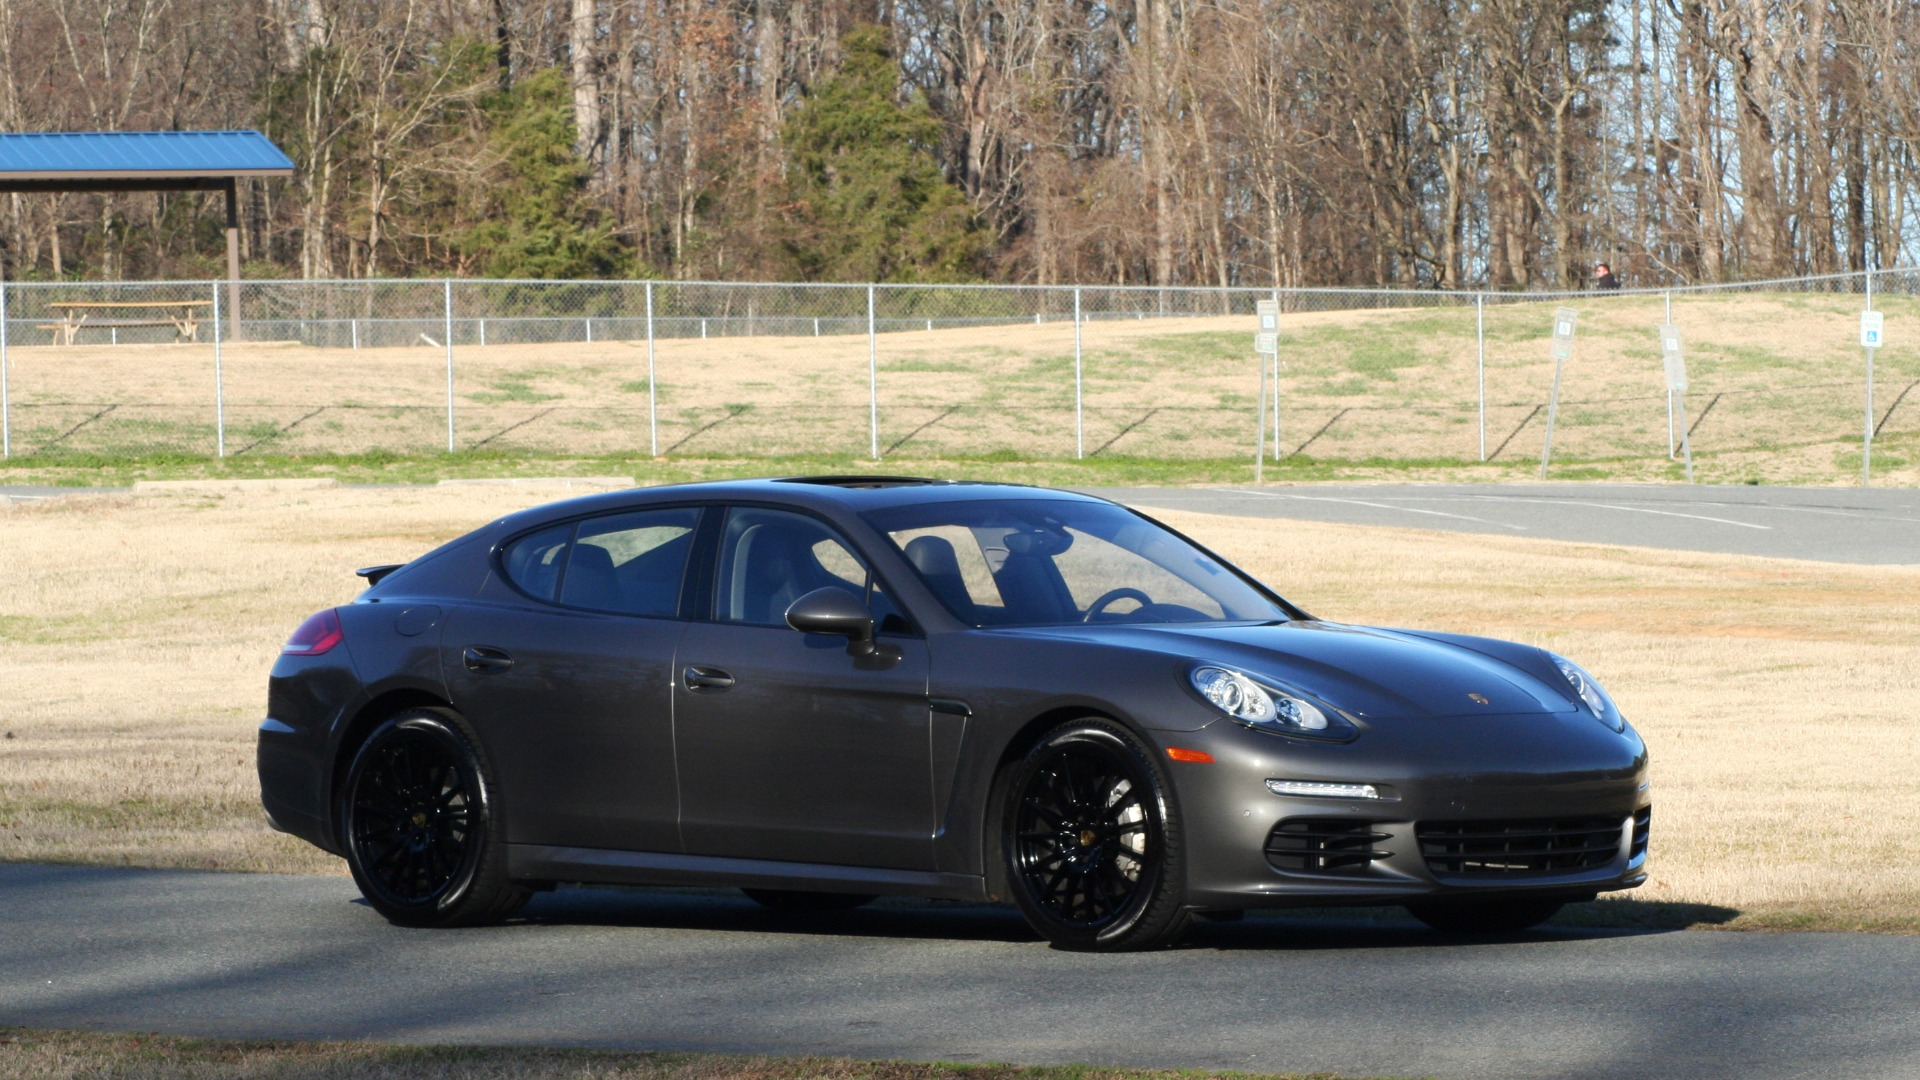 Used 2016 Porsche PANAMERA S / TURBO V6 / PDK / NAV / BOSE / SNRF / LDW / REARVIEW for sale Sold at Formula Imports in Charlotte NC 28227 17